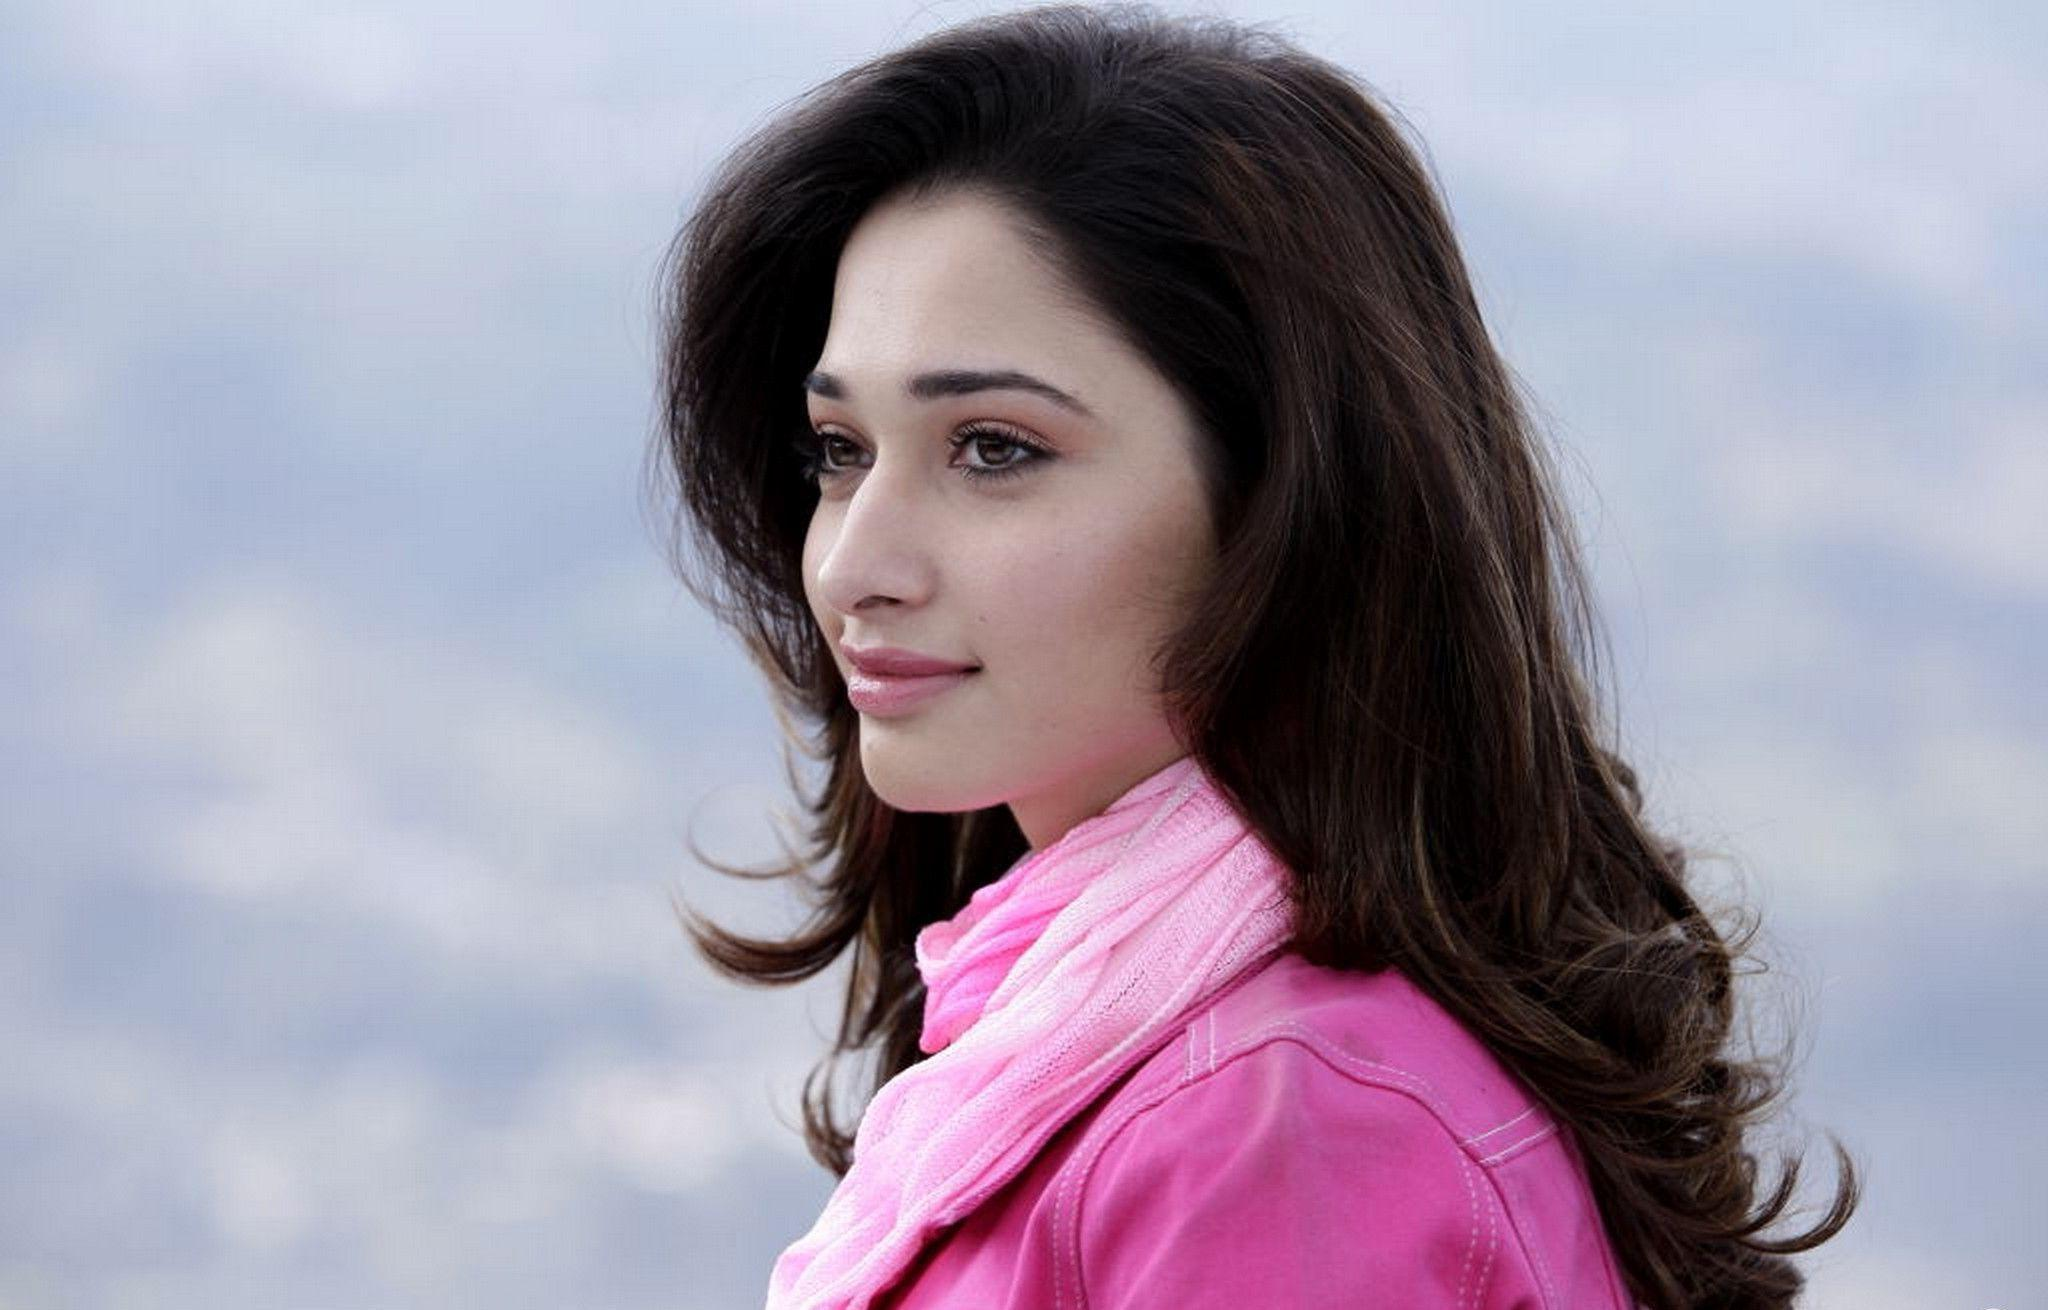 Tamana Hd: Tamanna Bhatia Wallpapers HD 2016